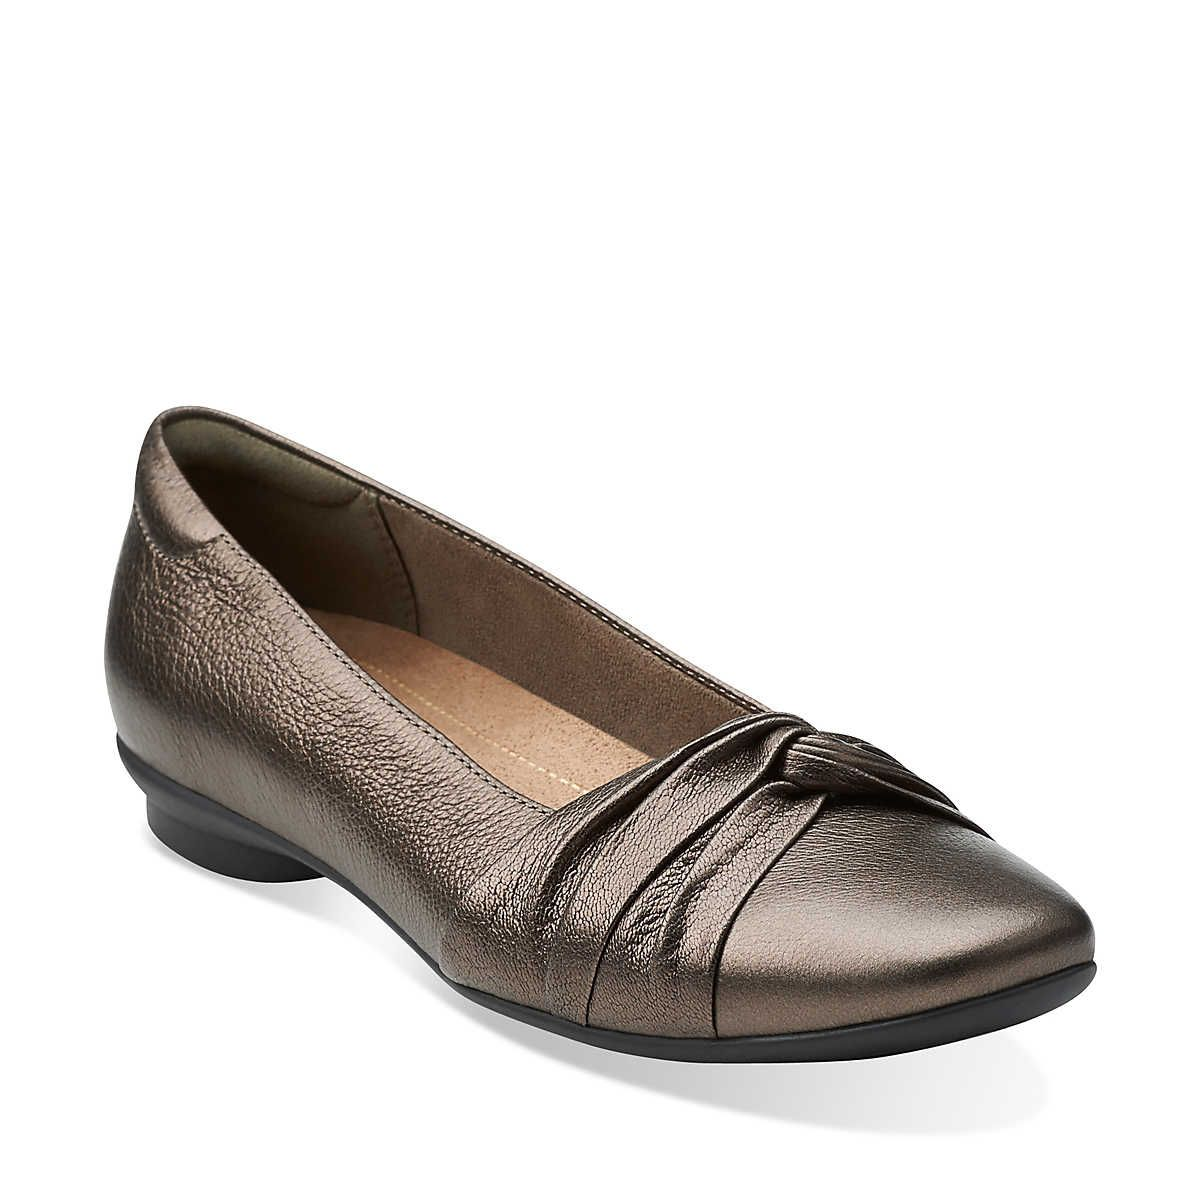 Candra Gleam in Bronze Leather - Womens Shoes from Clarks